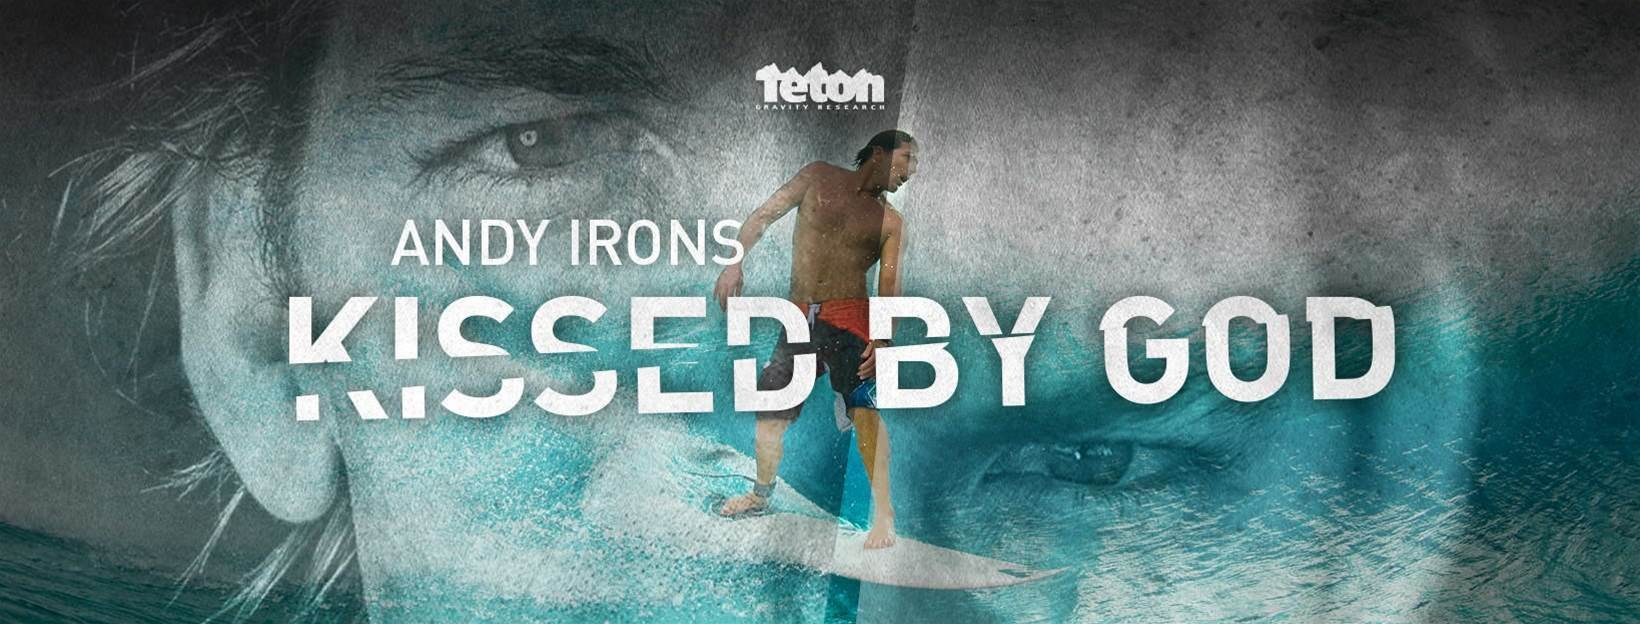 Australian Tour Dates to 'Andy Irons: Kissed By God'